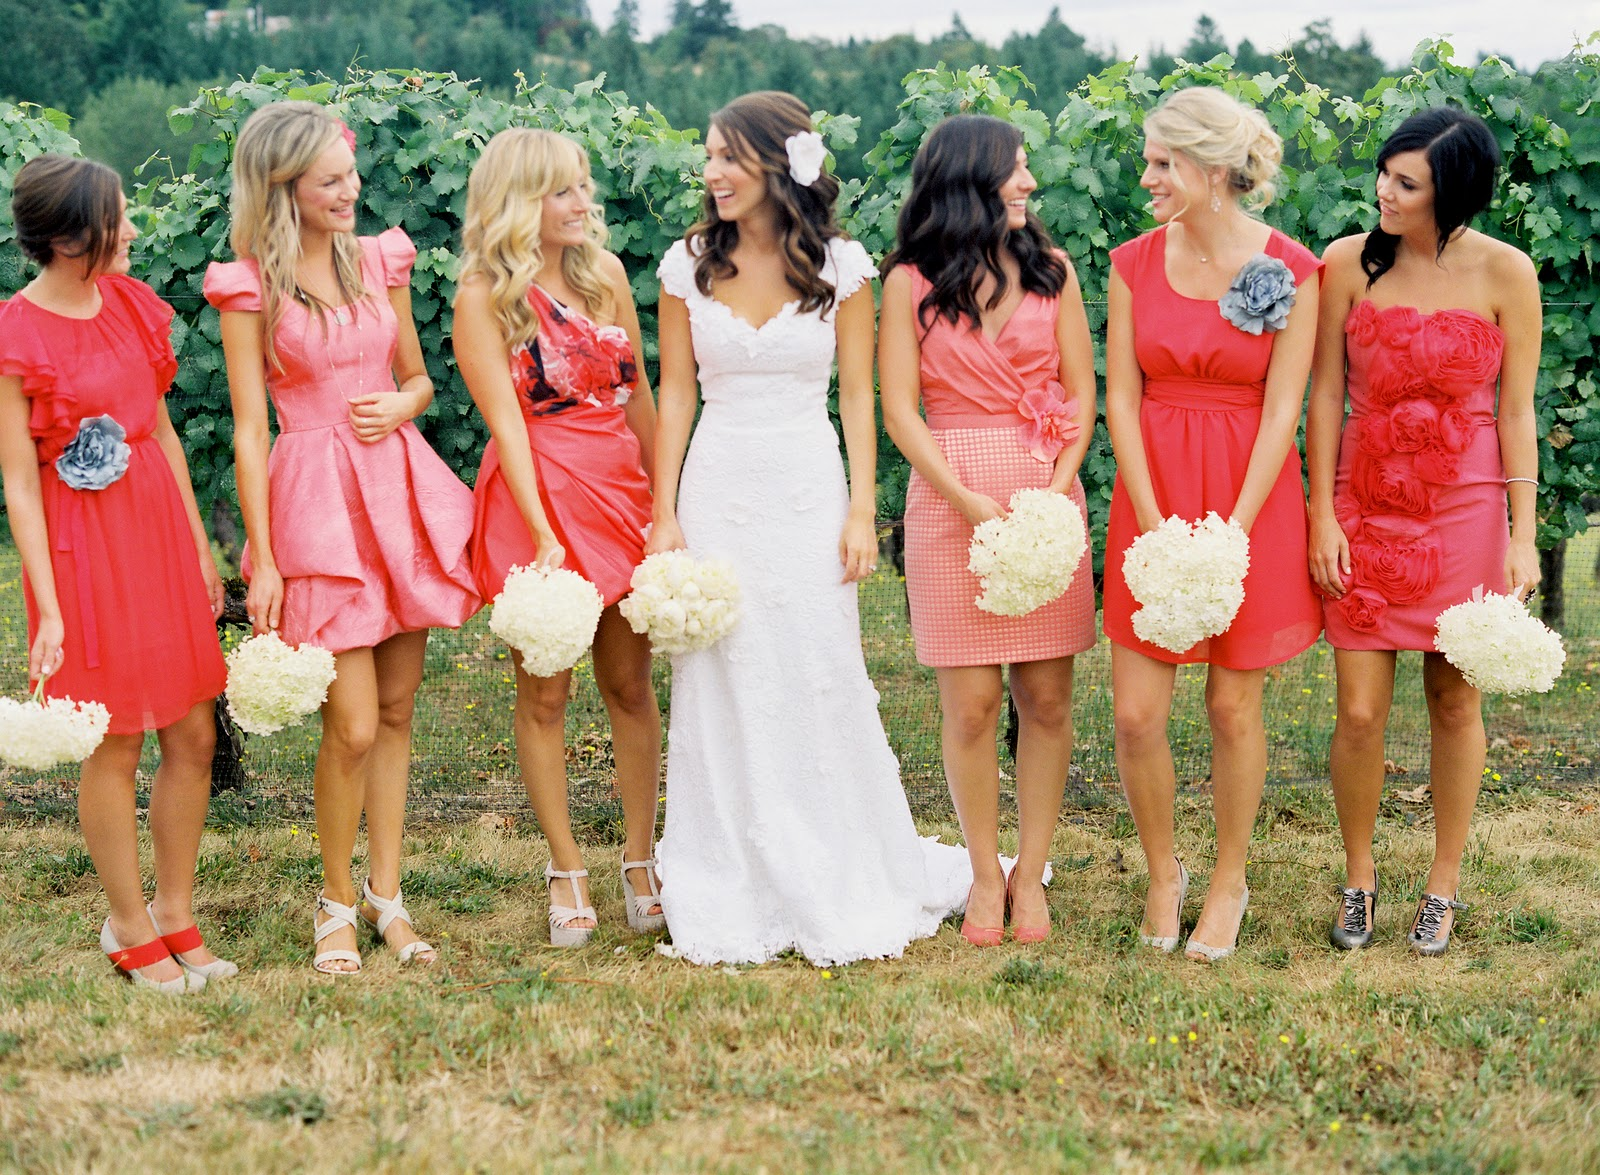 here are my other favorite pegs for mismatched bridesmaid gowns